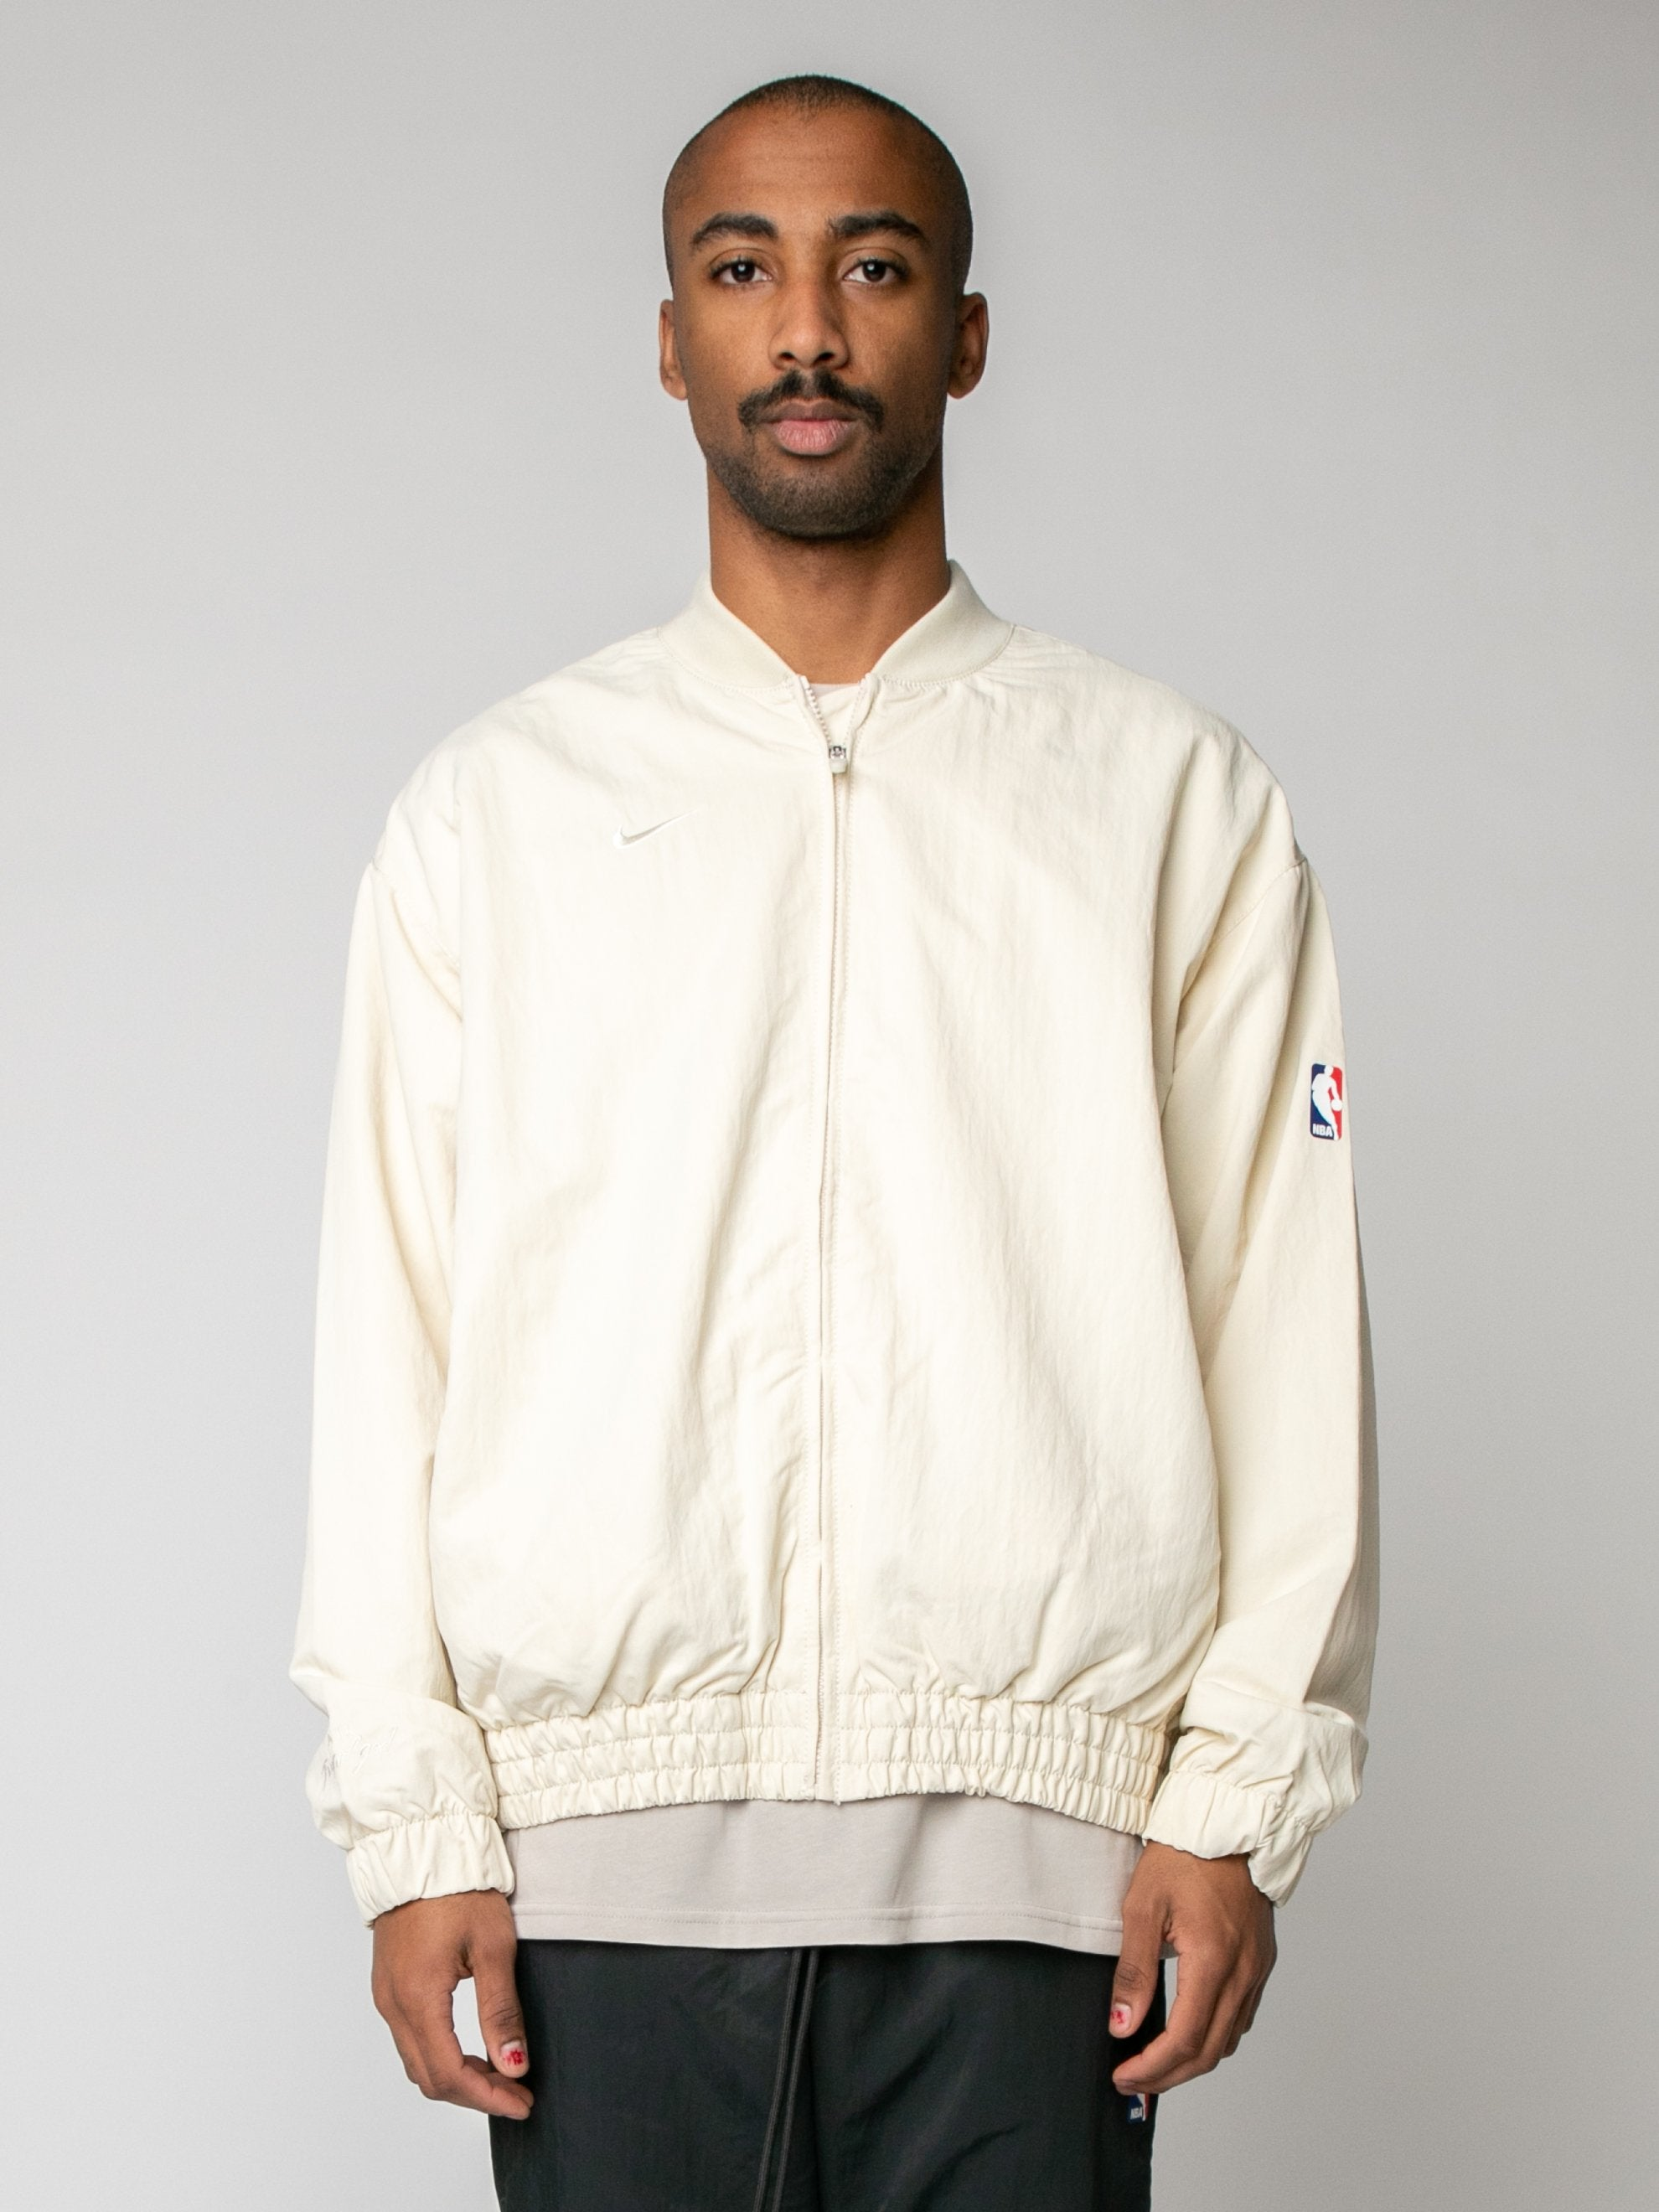 Light Cream Nike x Fear of God Basketball Jacket 2